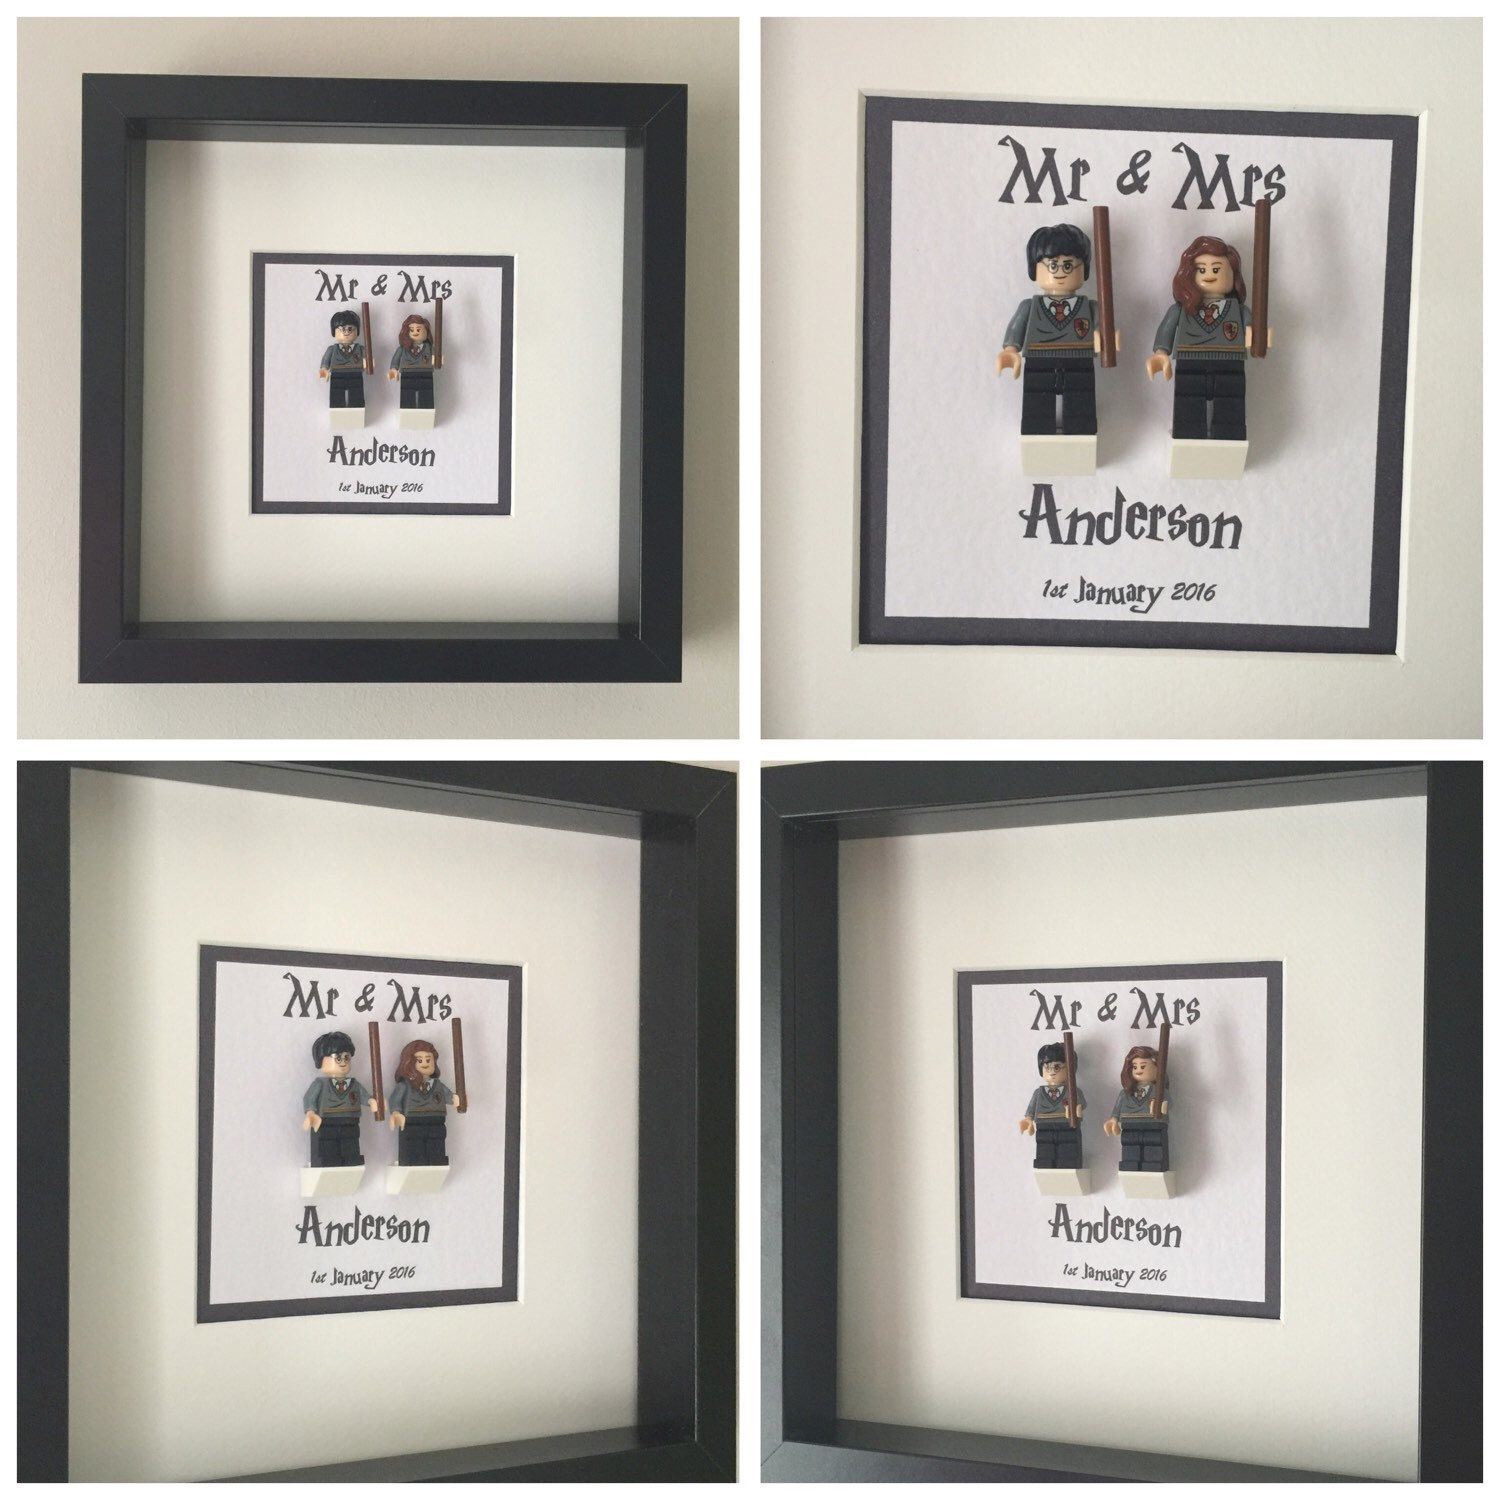 Harry Potter Mr & Mrs Wedding Frame Now Added To Our Shop